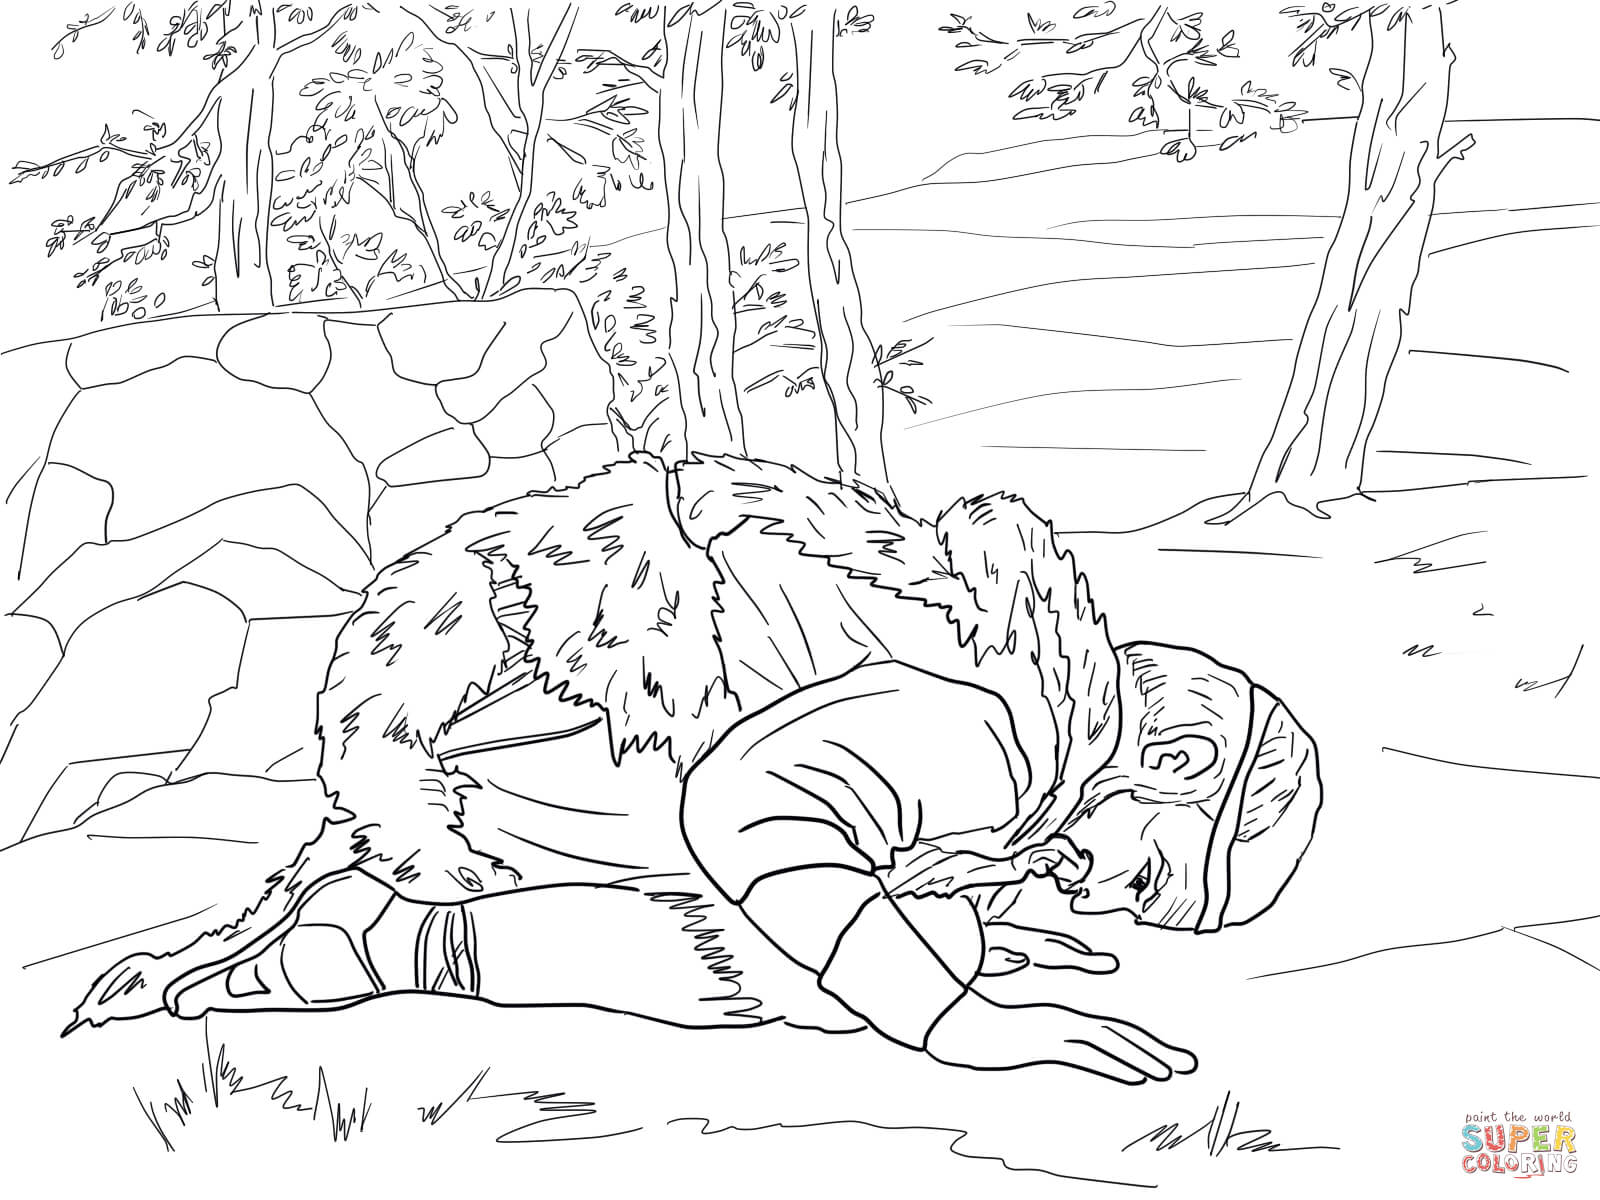 fiesta bible school coloring pages - photo#25